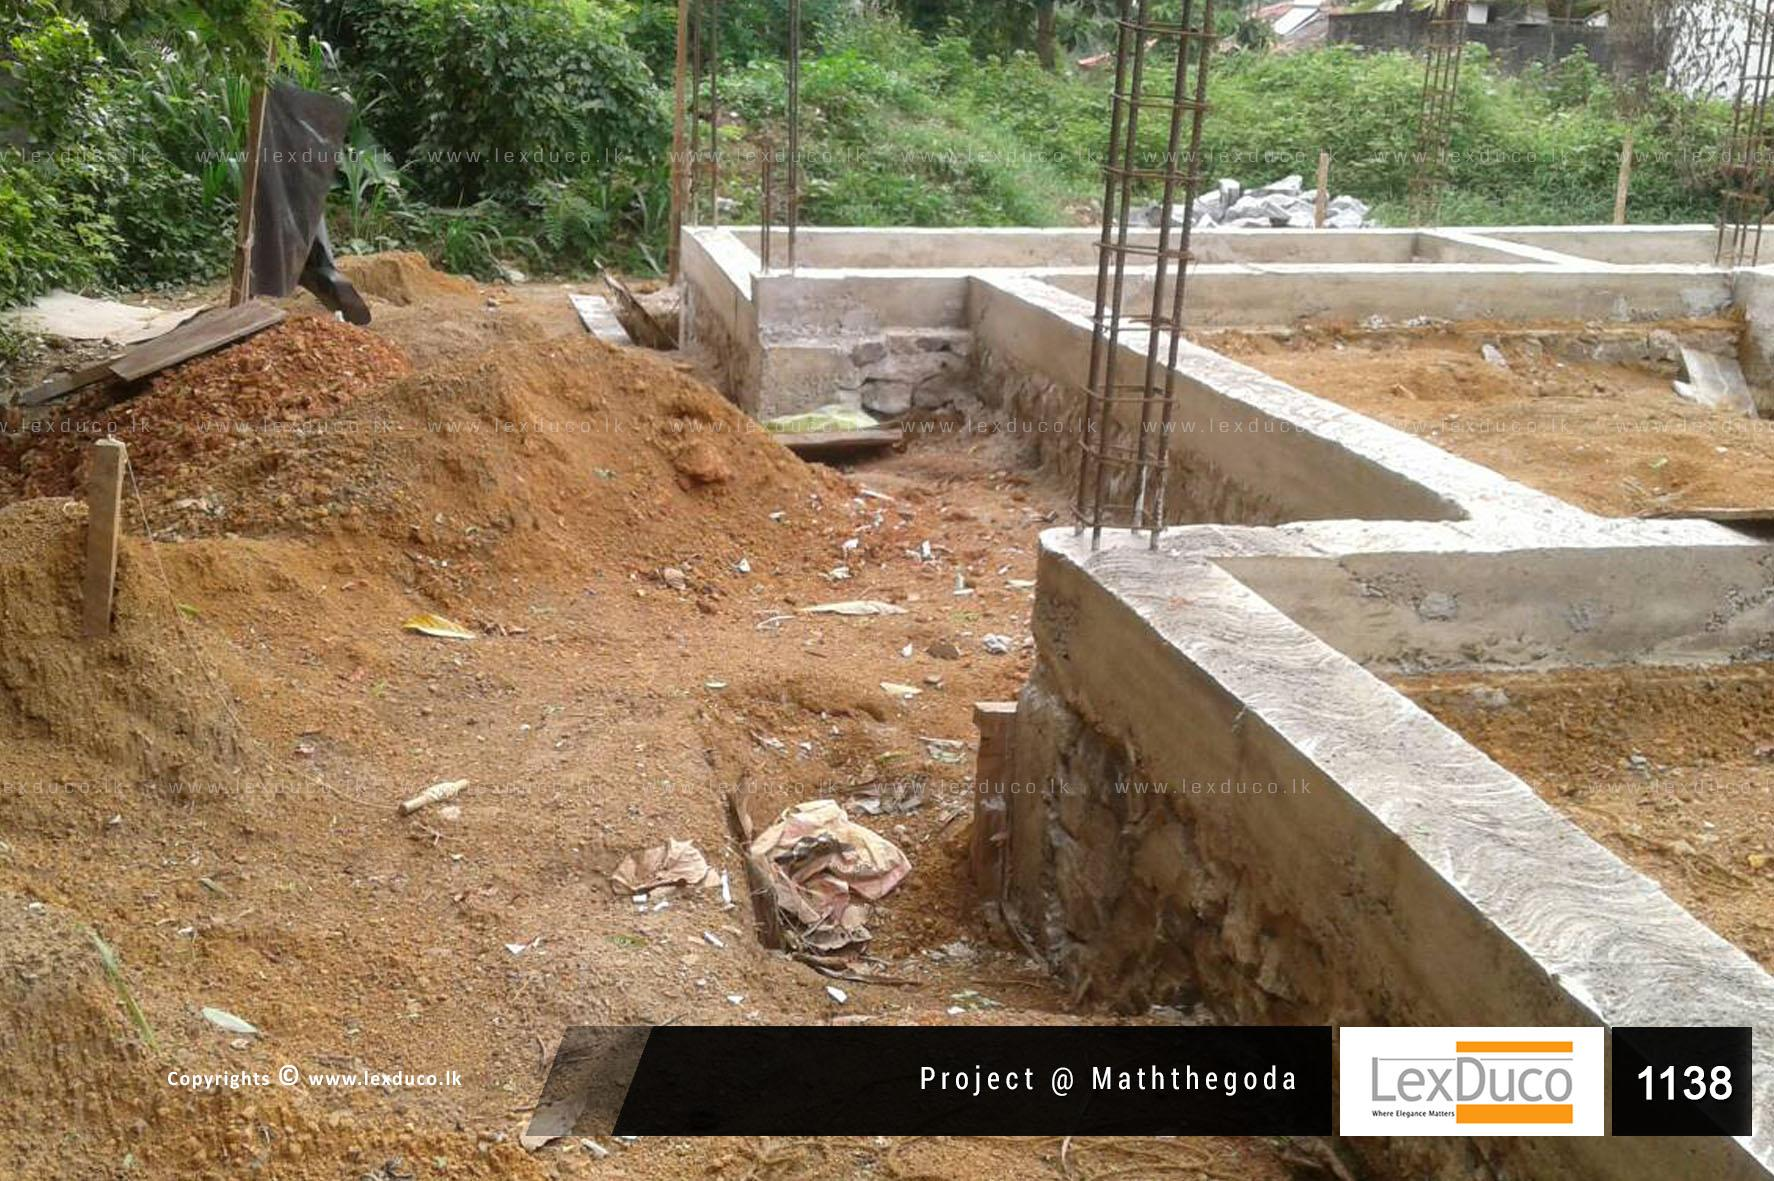 Residential Housing Project at Maththegoda   Lex Duco